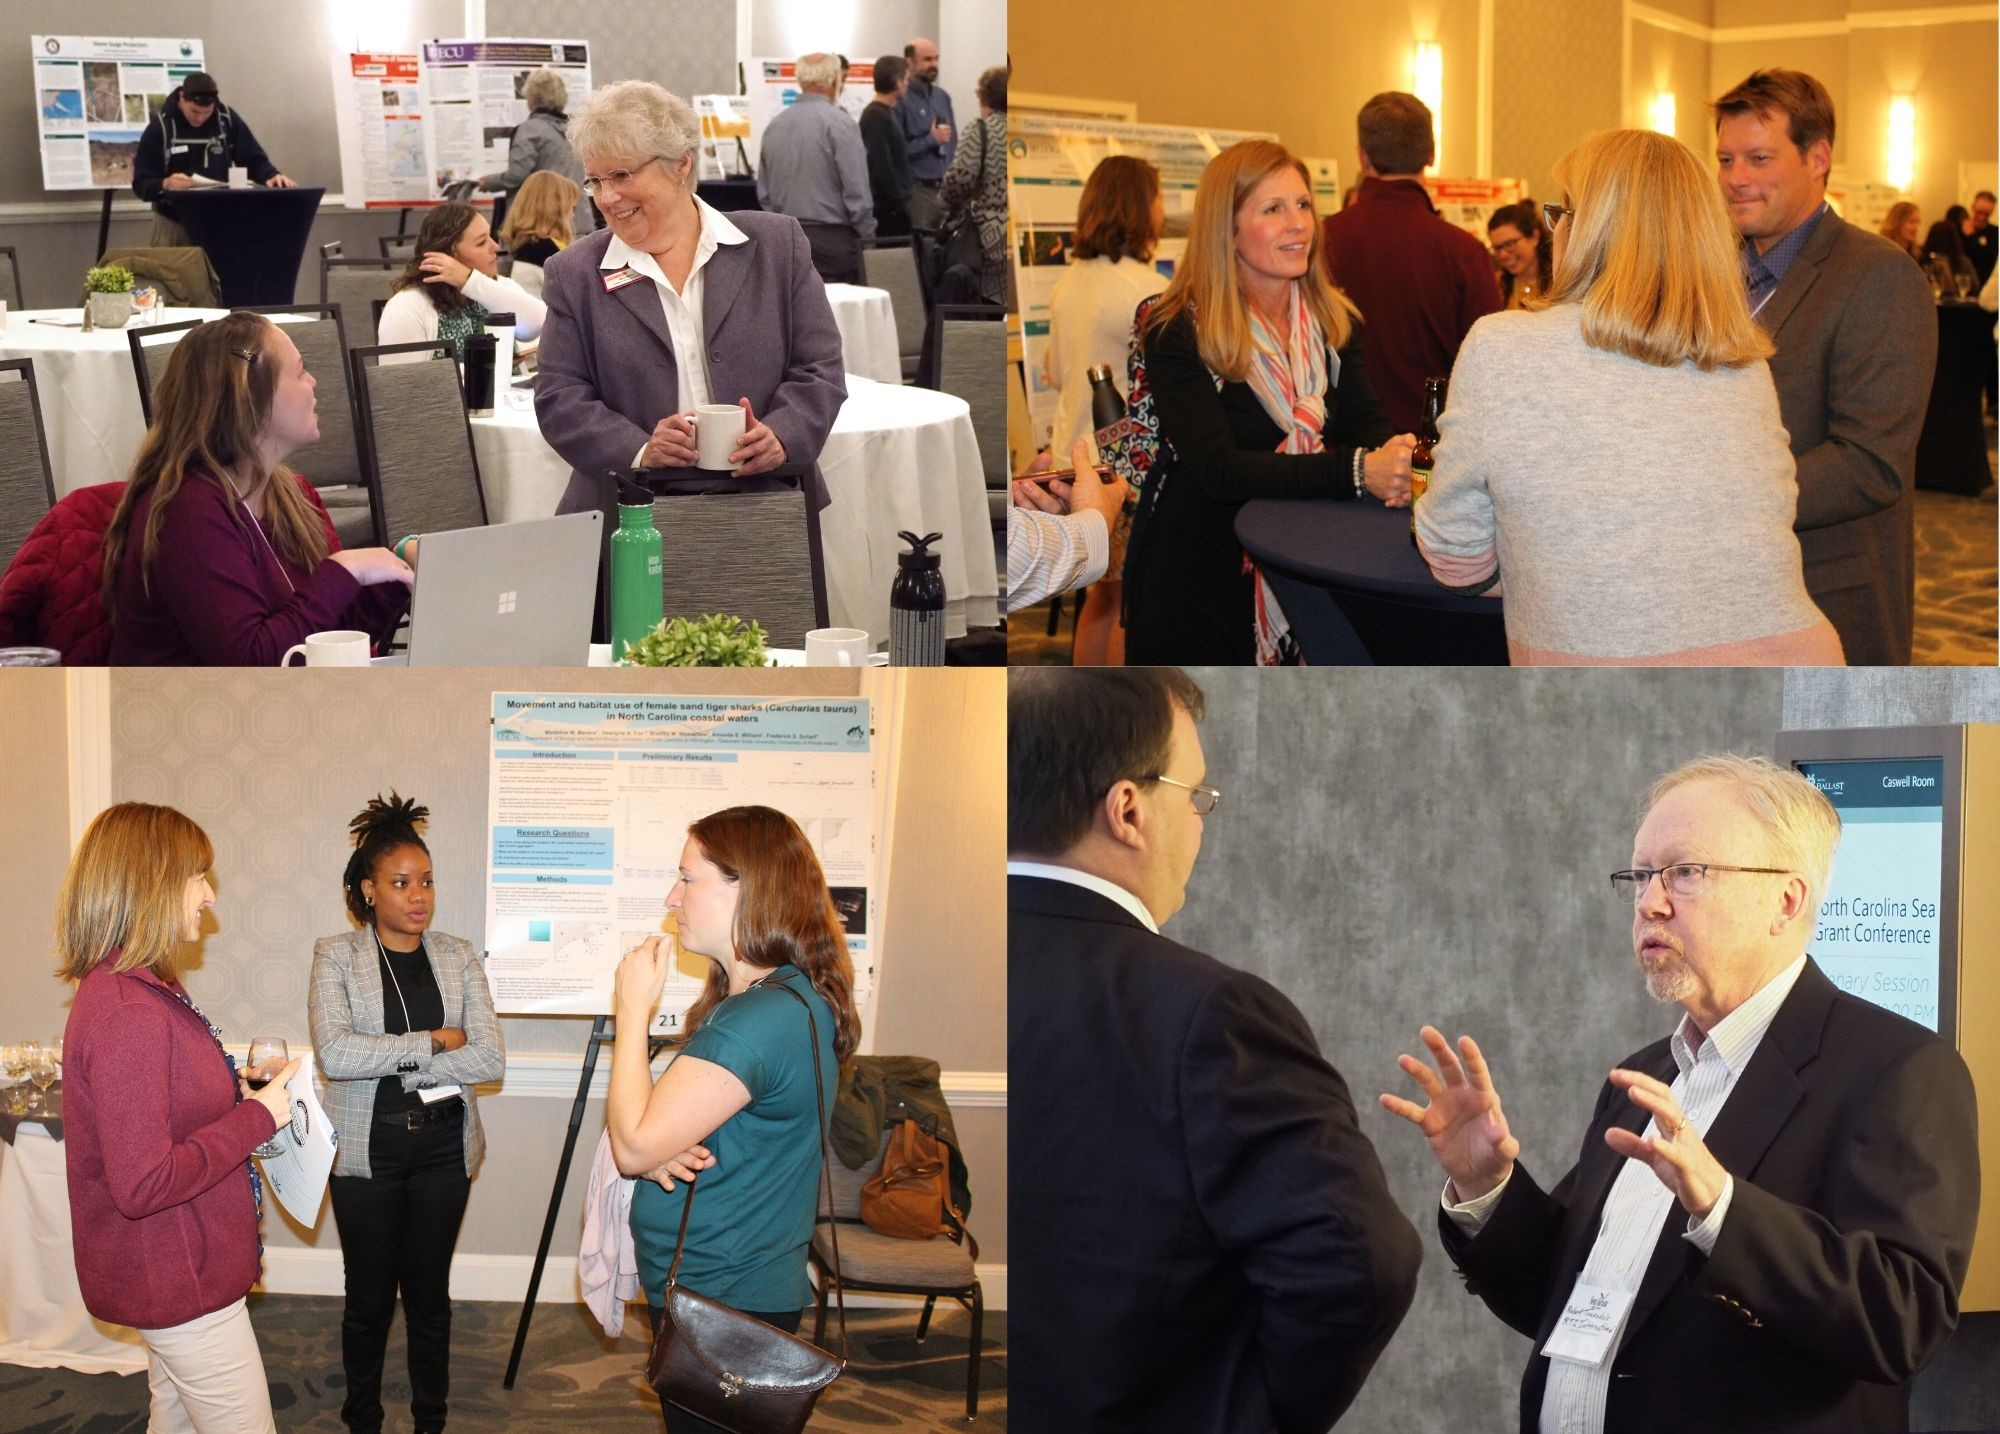 Day one of the Coastal Conference offered many opportunities for networking and sharing of ideas.